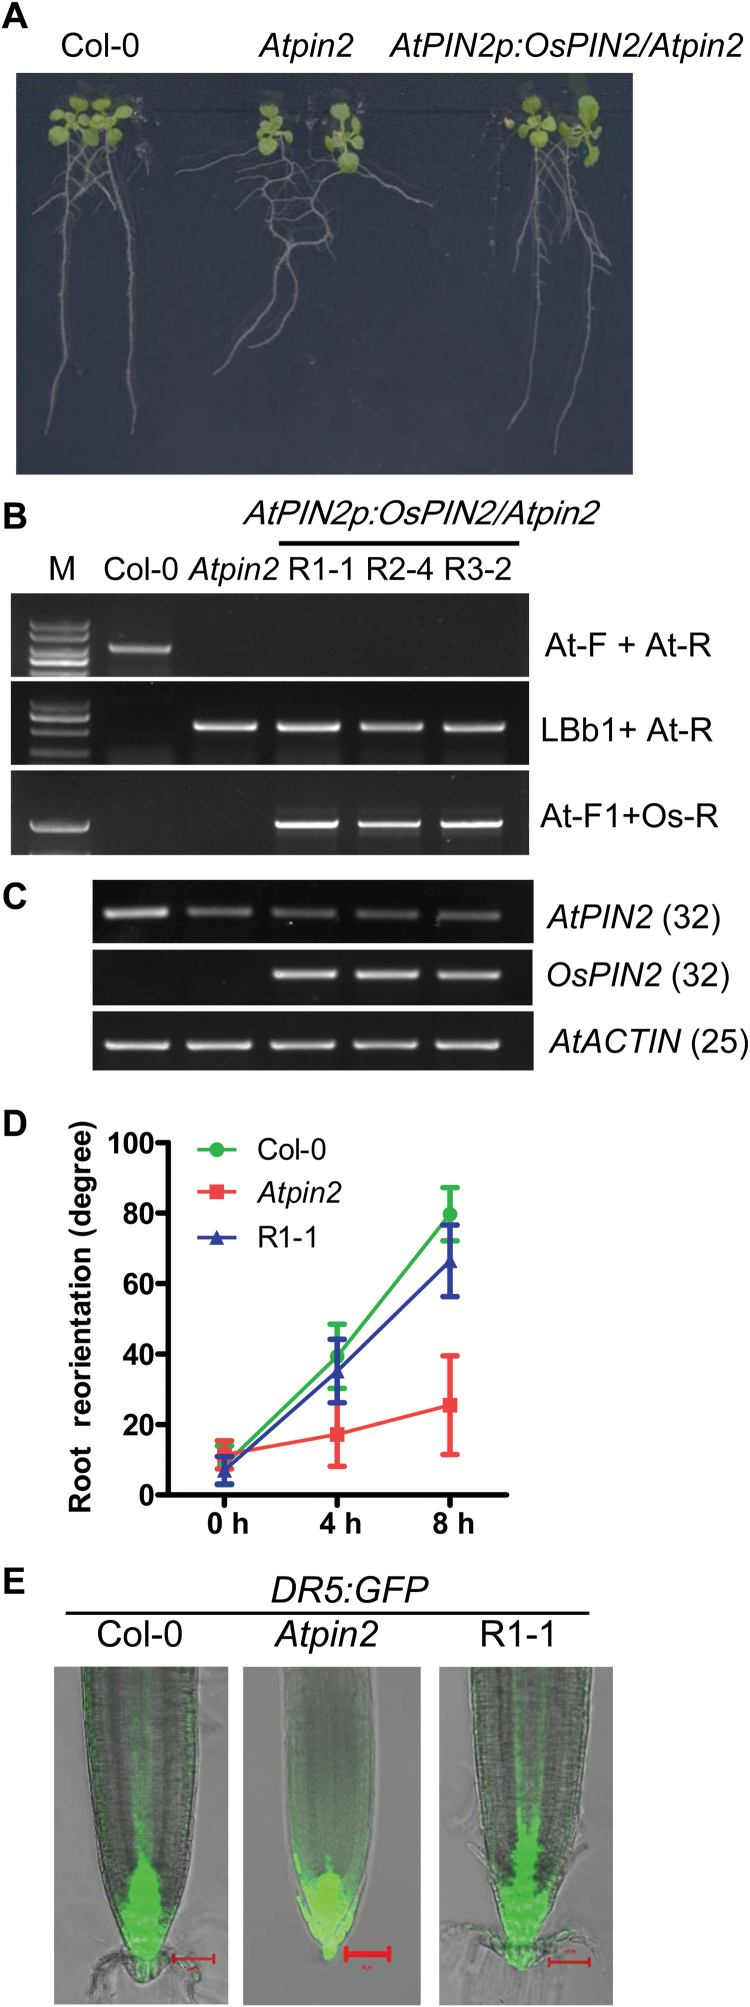 Expression of OsPIN2 rescues the phenotype of the Arabidopsis pin2 mutant. (A) The phenotypes of 10-d-old Col-0, Atpin2 , and Atpin2p:OsPIN2/Atpin2 transgenic lines. (B) Molecular characterization of Col-0, Atpin2 , and three independent Atpin2p:OsPIN2/Atpin2 transgenic lines using PCR. Primers are listed in Supplementary Table S1 . (C) Expression levels of AtPIN2 and OsPIN2 in the transgenic lines using RT-PCR. (D) Kinetics of root reorientation of Col-0, Atpin2 , and Atpin2p:OsPIN2/Atpin2 transgenic lines (R1-1): 4-day-old seedlings were placed horizontally and the root angle was measured at time points as indicated. Data are means ±SD ( n =20). (E) Fluorescence of DR5:GFP in Col-0, Atpin2 , and Atpin2p:OsPIN2/Atpin2 line R1-1; scale bars =50 μm.